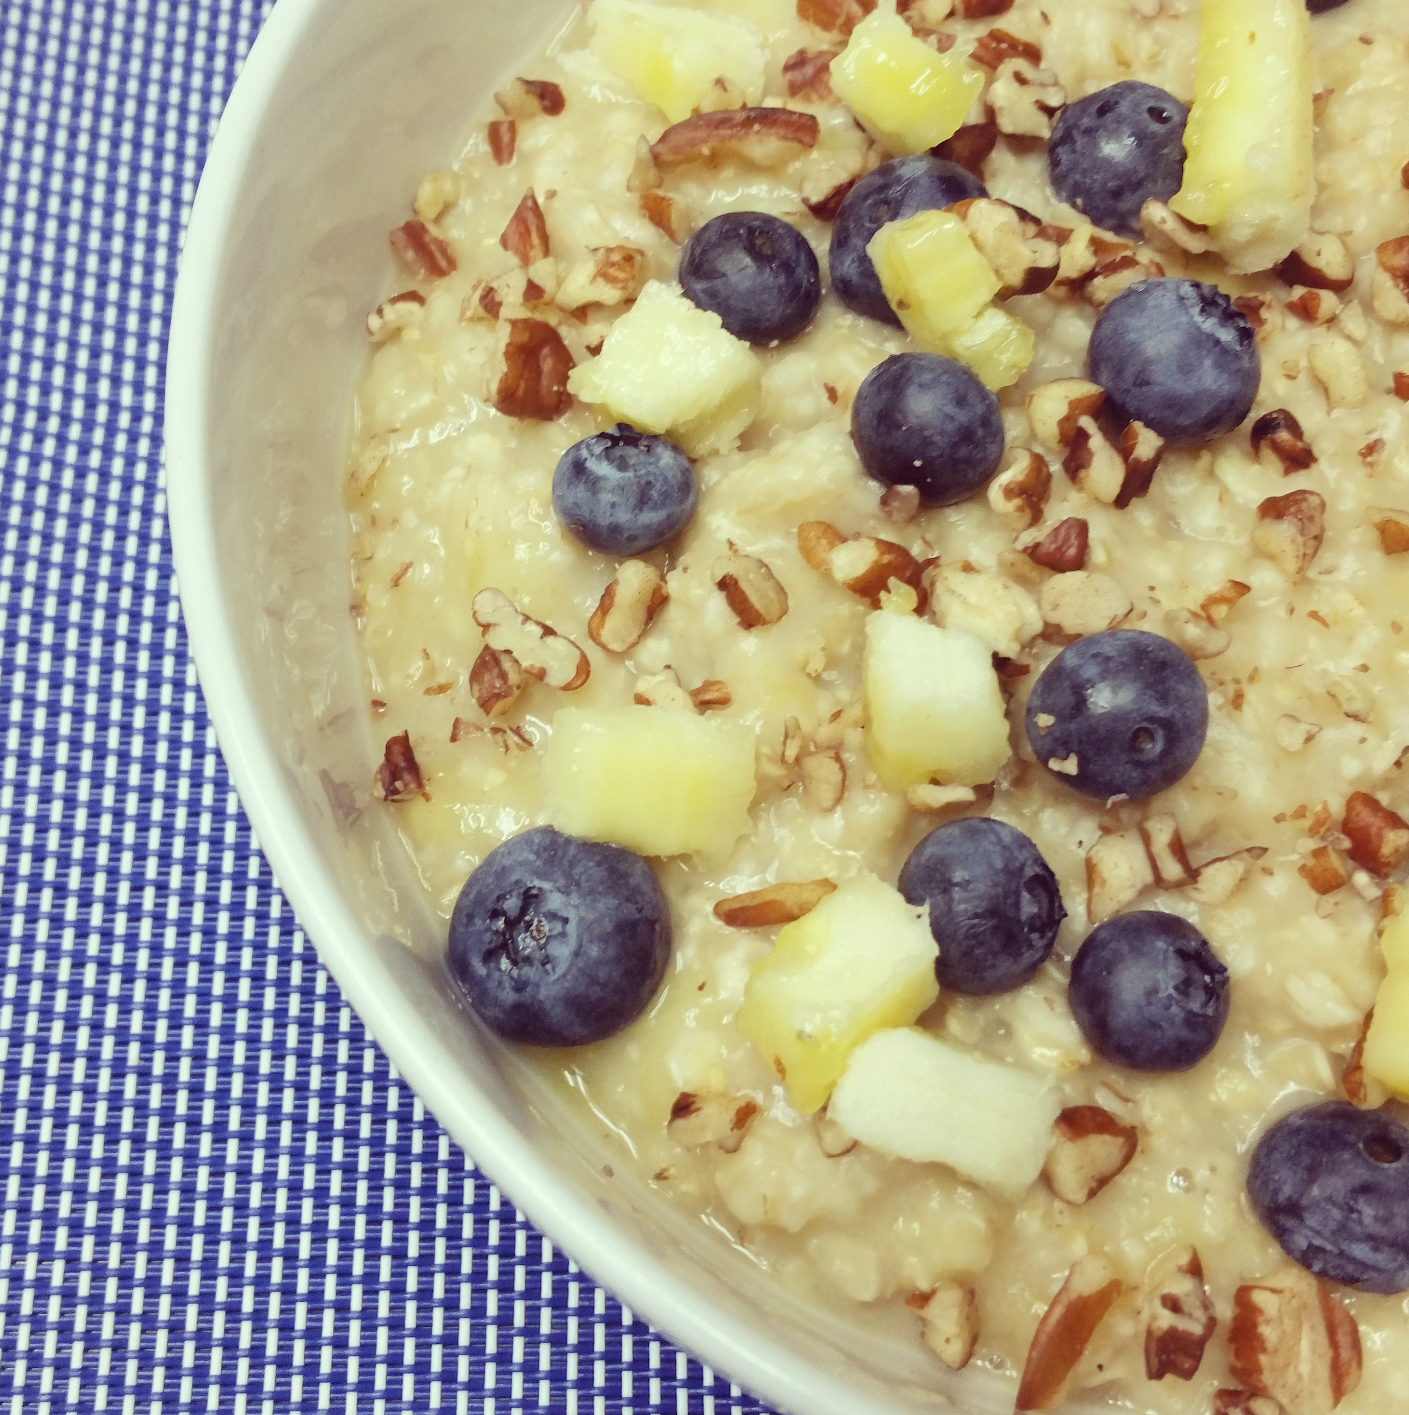 Banana Blueberry Oatmeal + Introducing Oatmeal Week